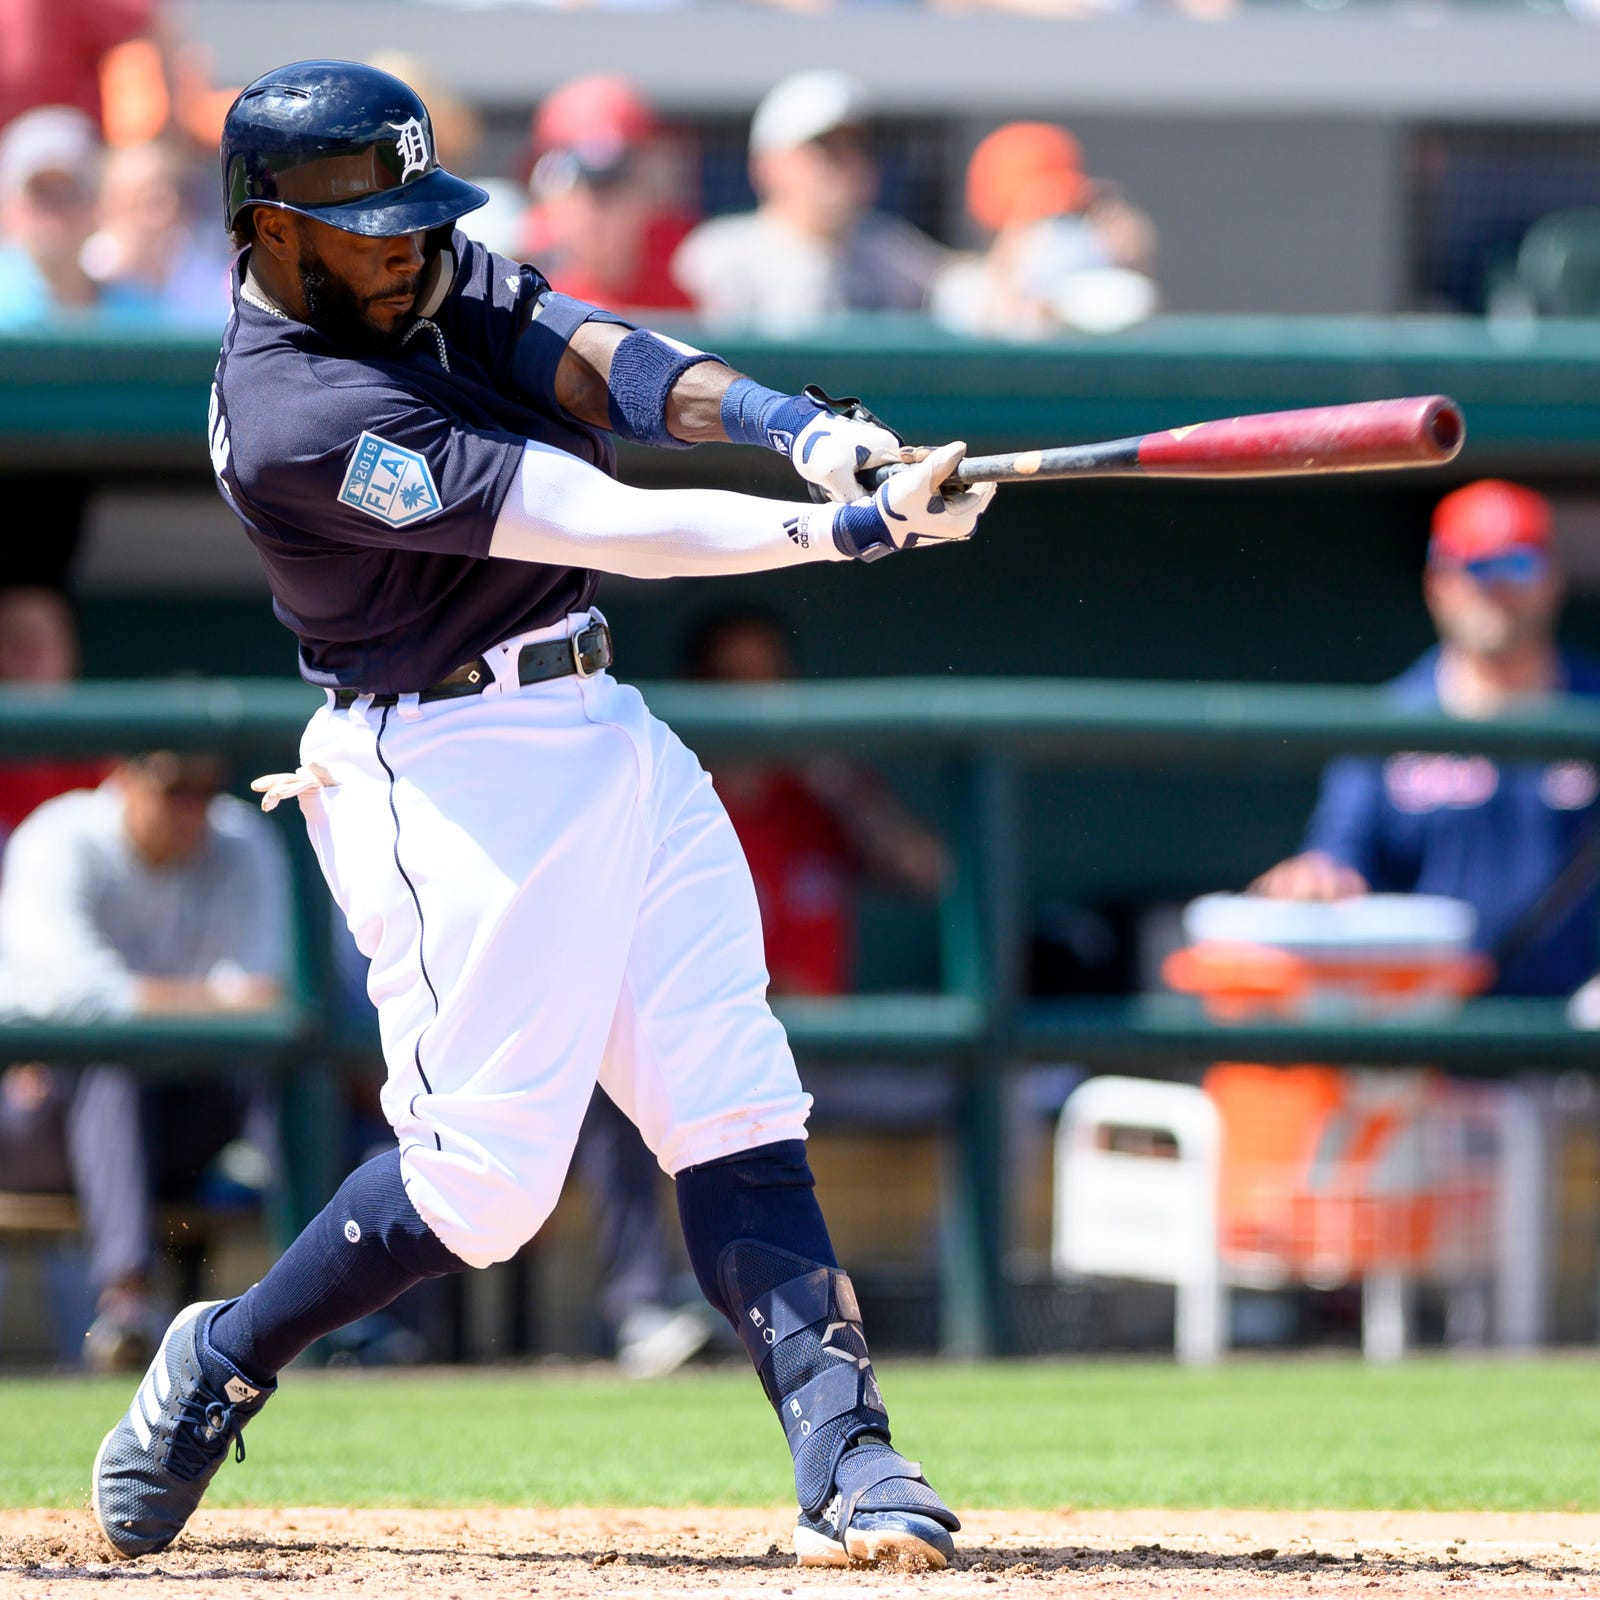 Detroit Tigers beat Philadelphia Phillies in spring, 3-1